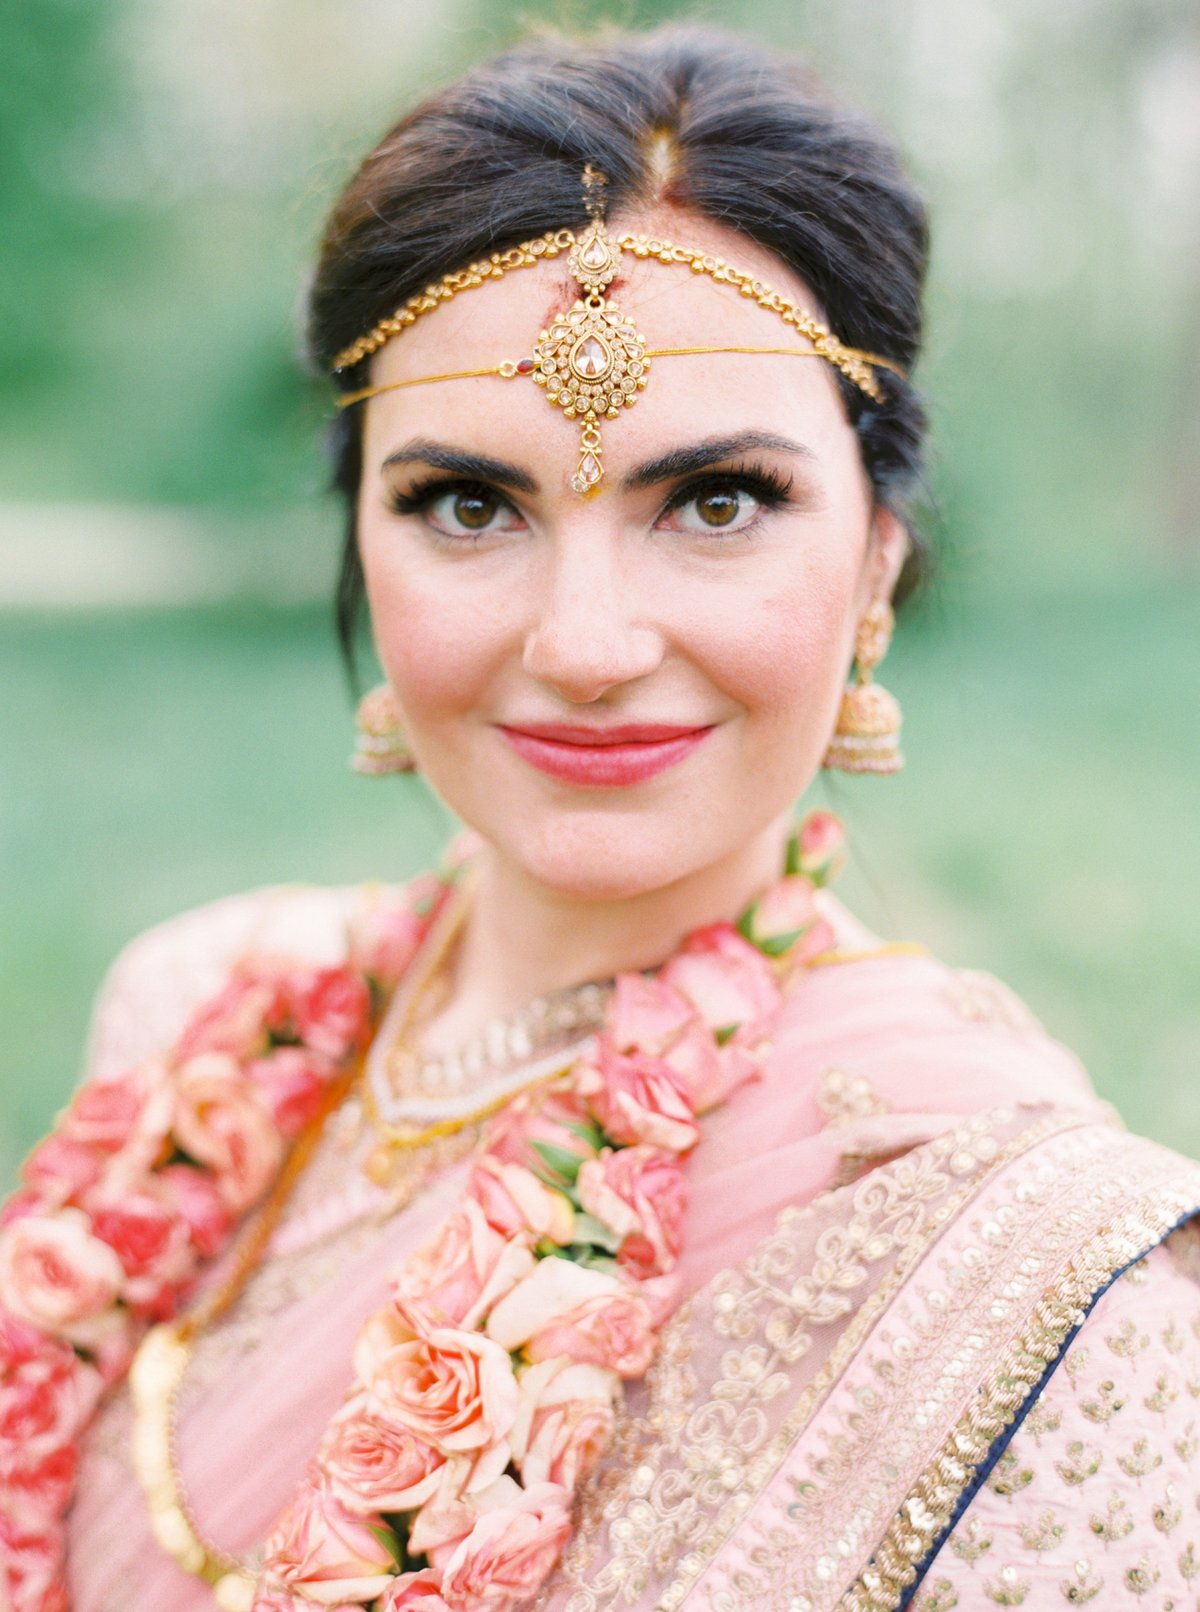 nicoleclareyphotography_hannah+akash_cincinnati_wedding_0047